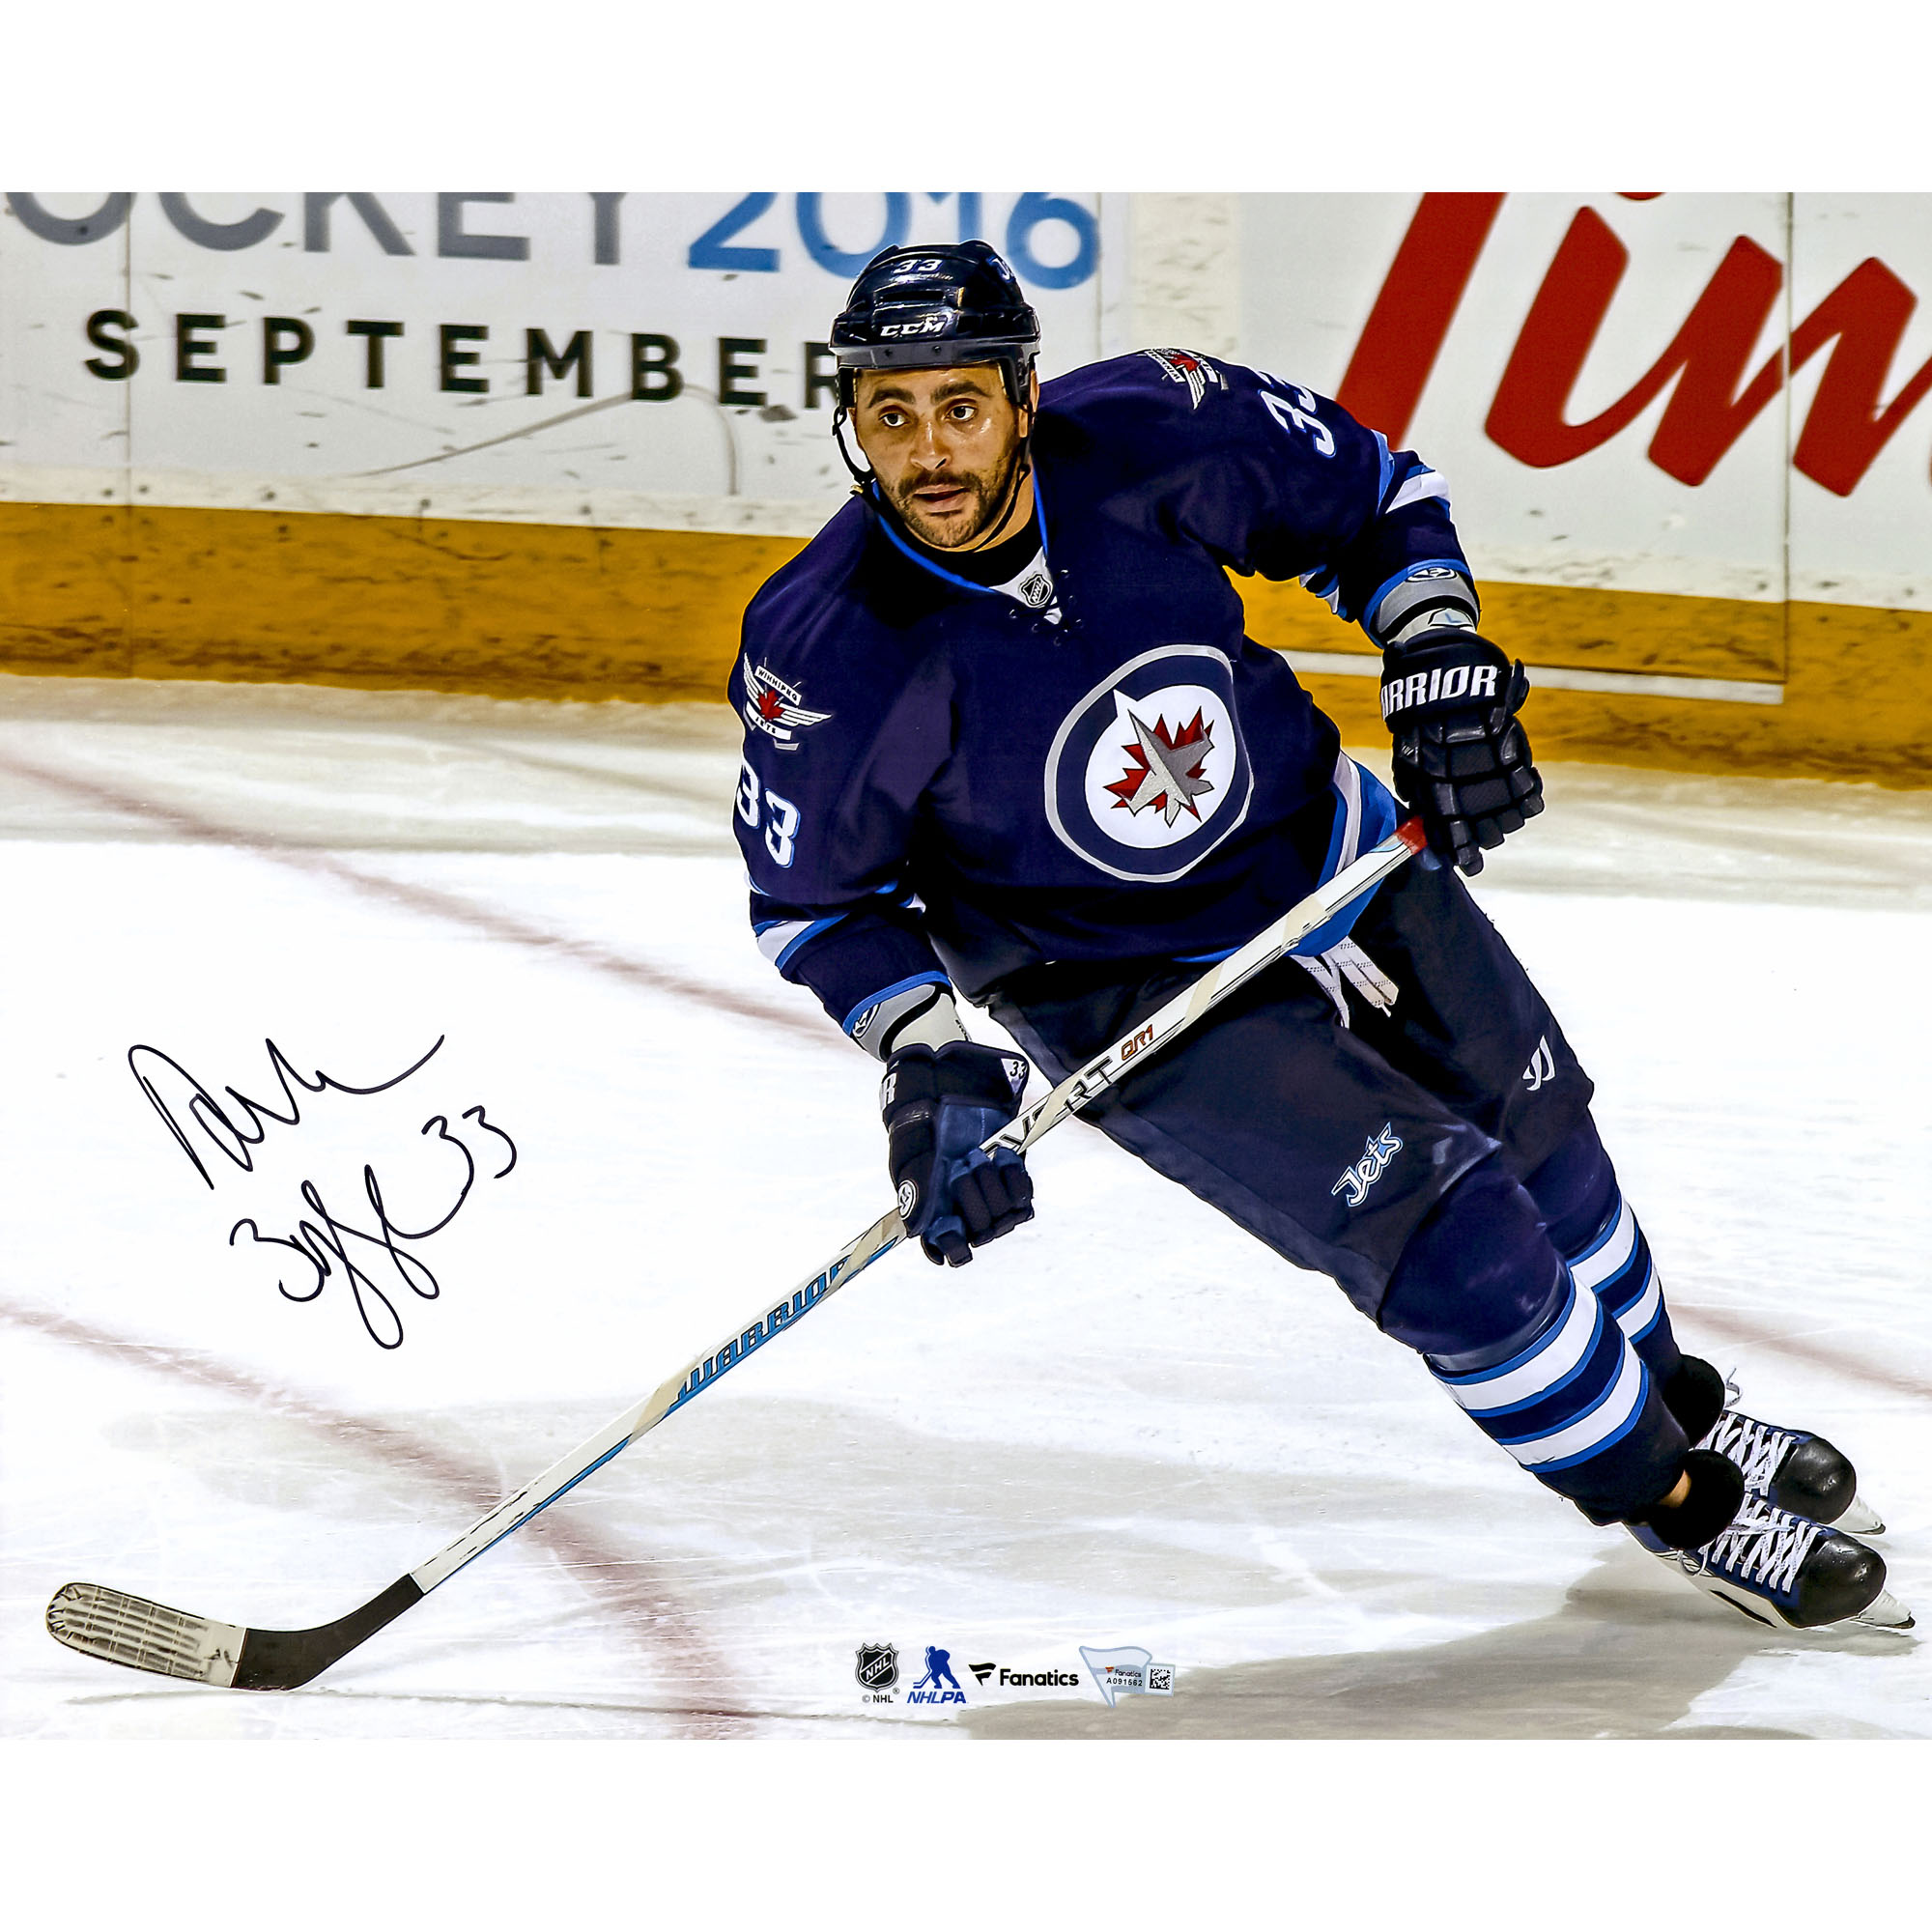 "Dustin Byfuglien Winnipeg Jets Fanatics Authentic Autographed 16"" x 20"" Blue Jersey Skating Photograph No Size by Fanatics Authentic"